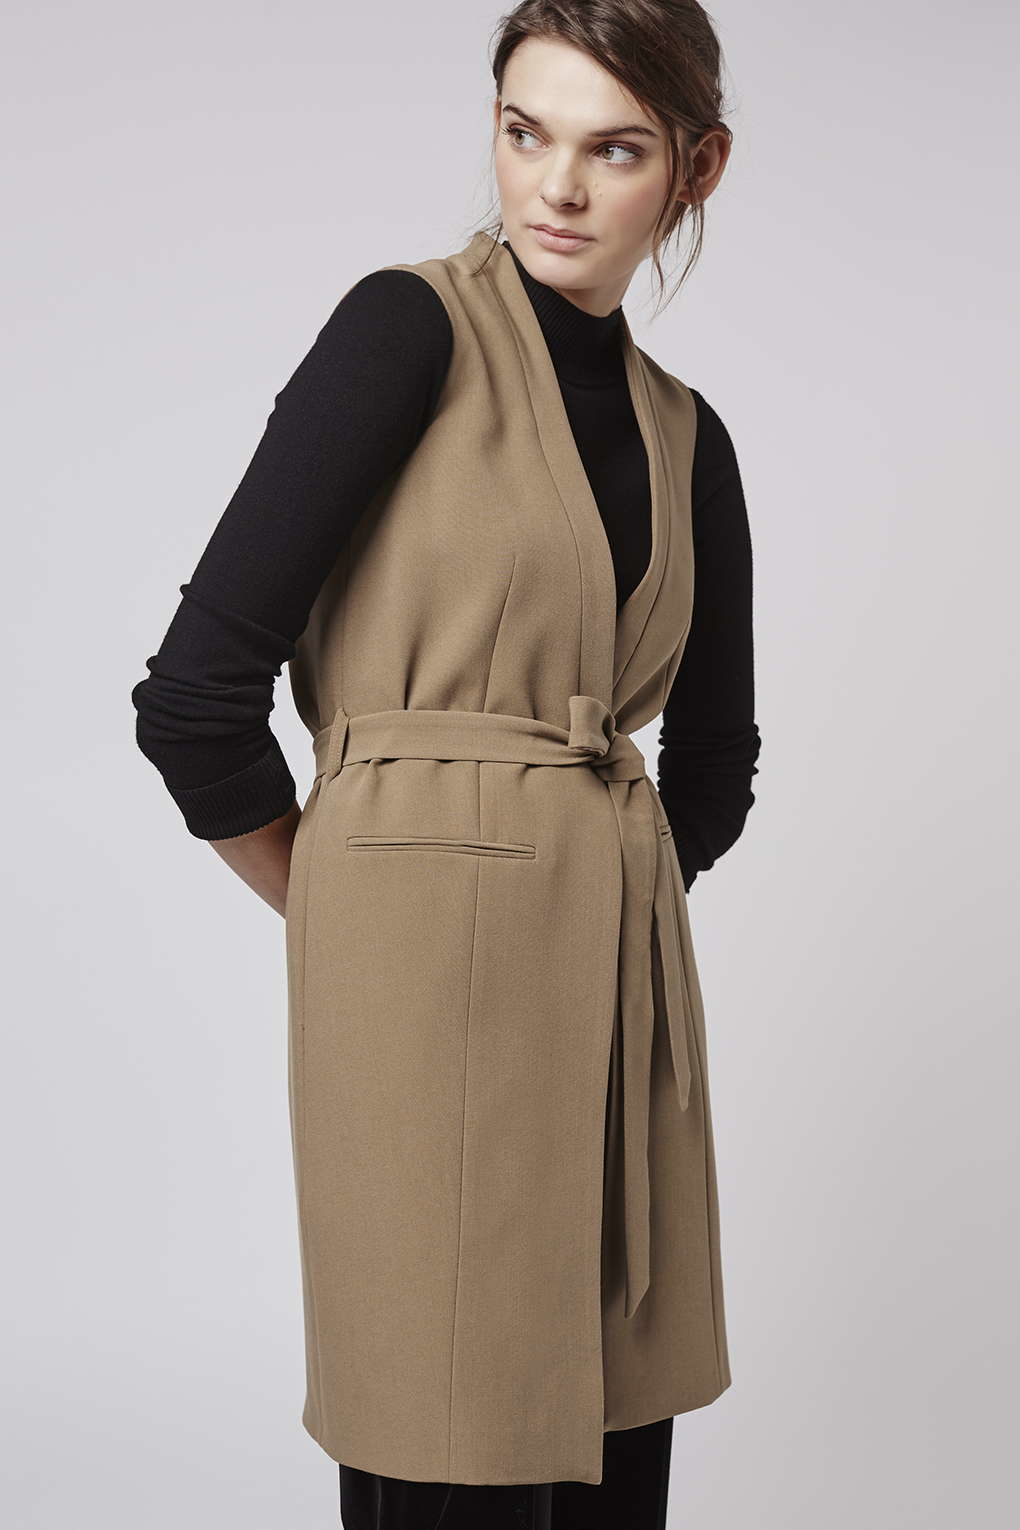 Lyst Topshop Belted Sleeveless Jacket In Natural